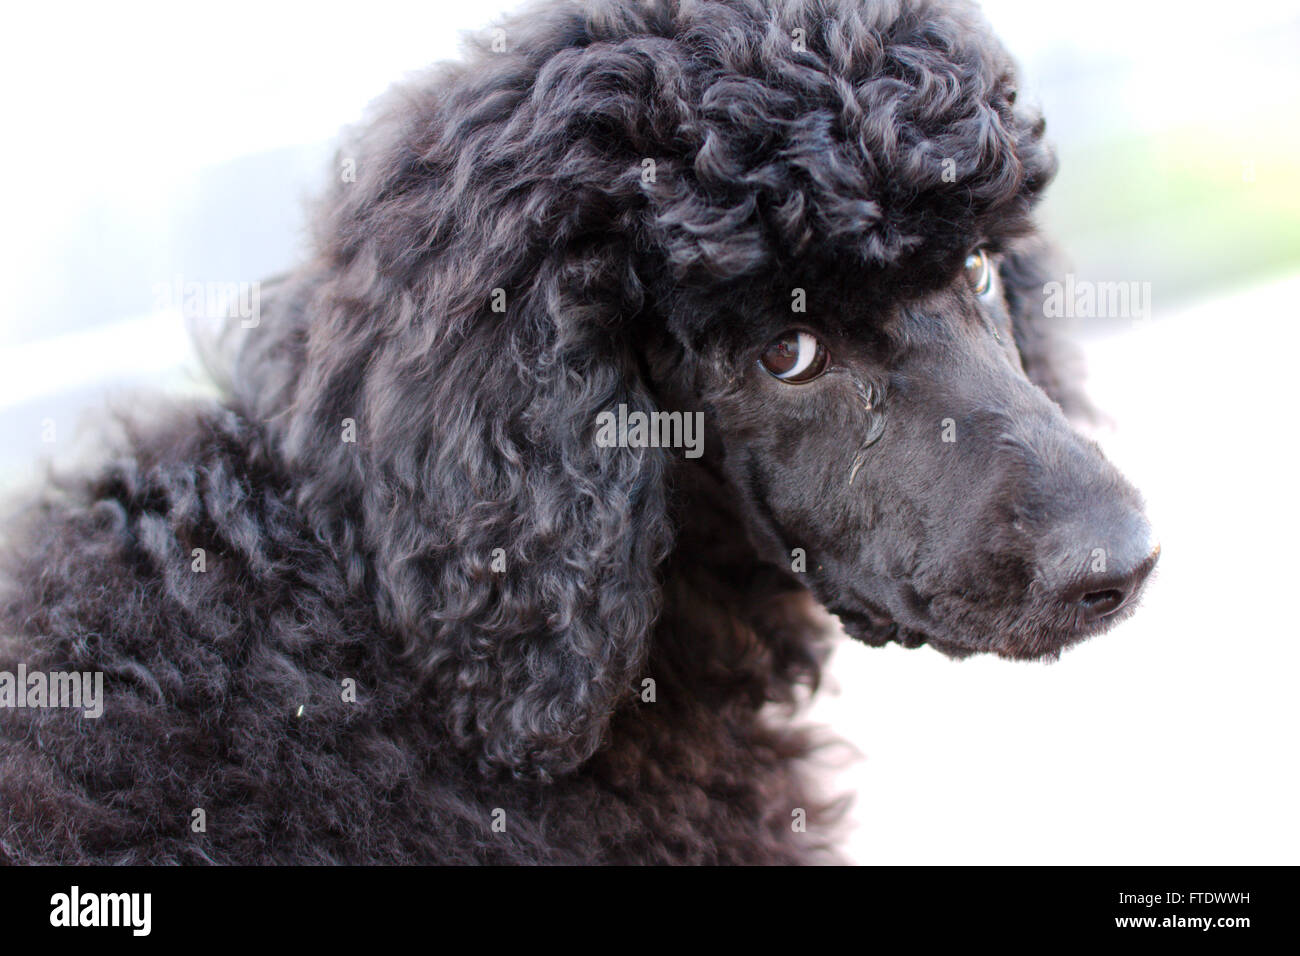 Black Standard Poodle Puppy 12 Weeks Old Looking At You Stock Photo Alamy